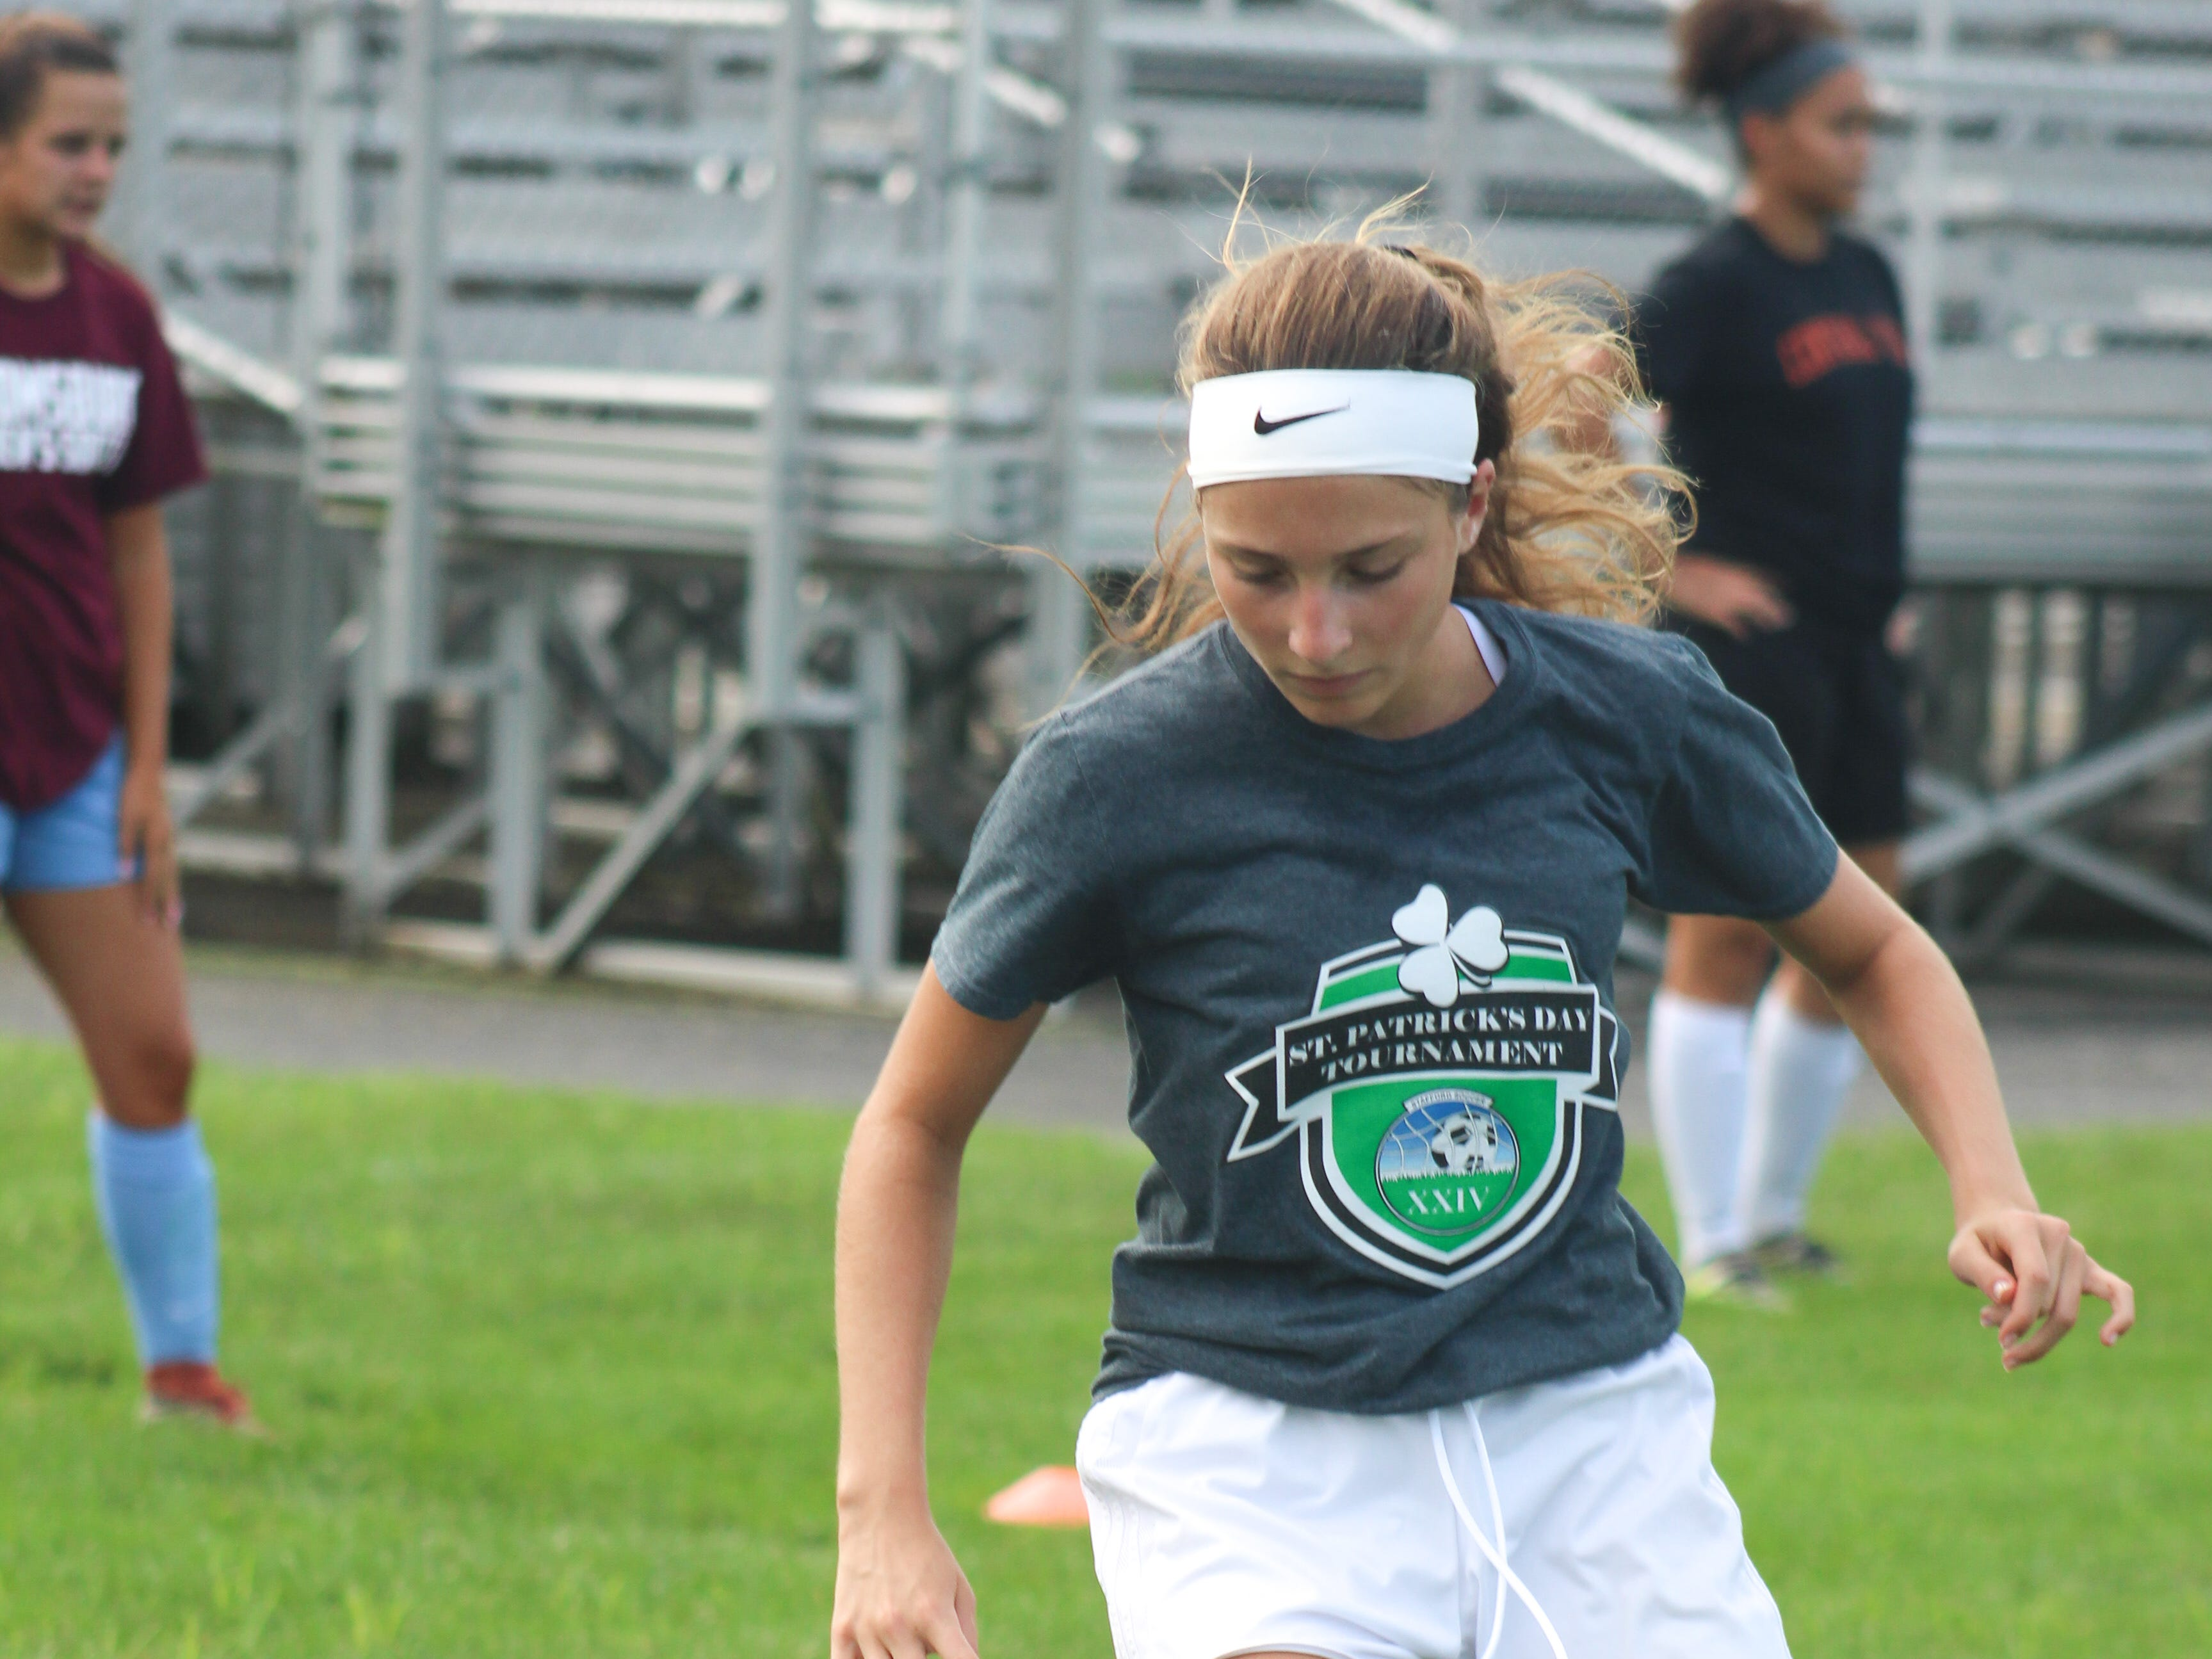 A Central York High School soccer player runs through a drill on August 13, 2018.